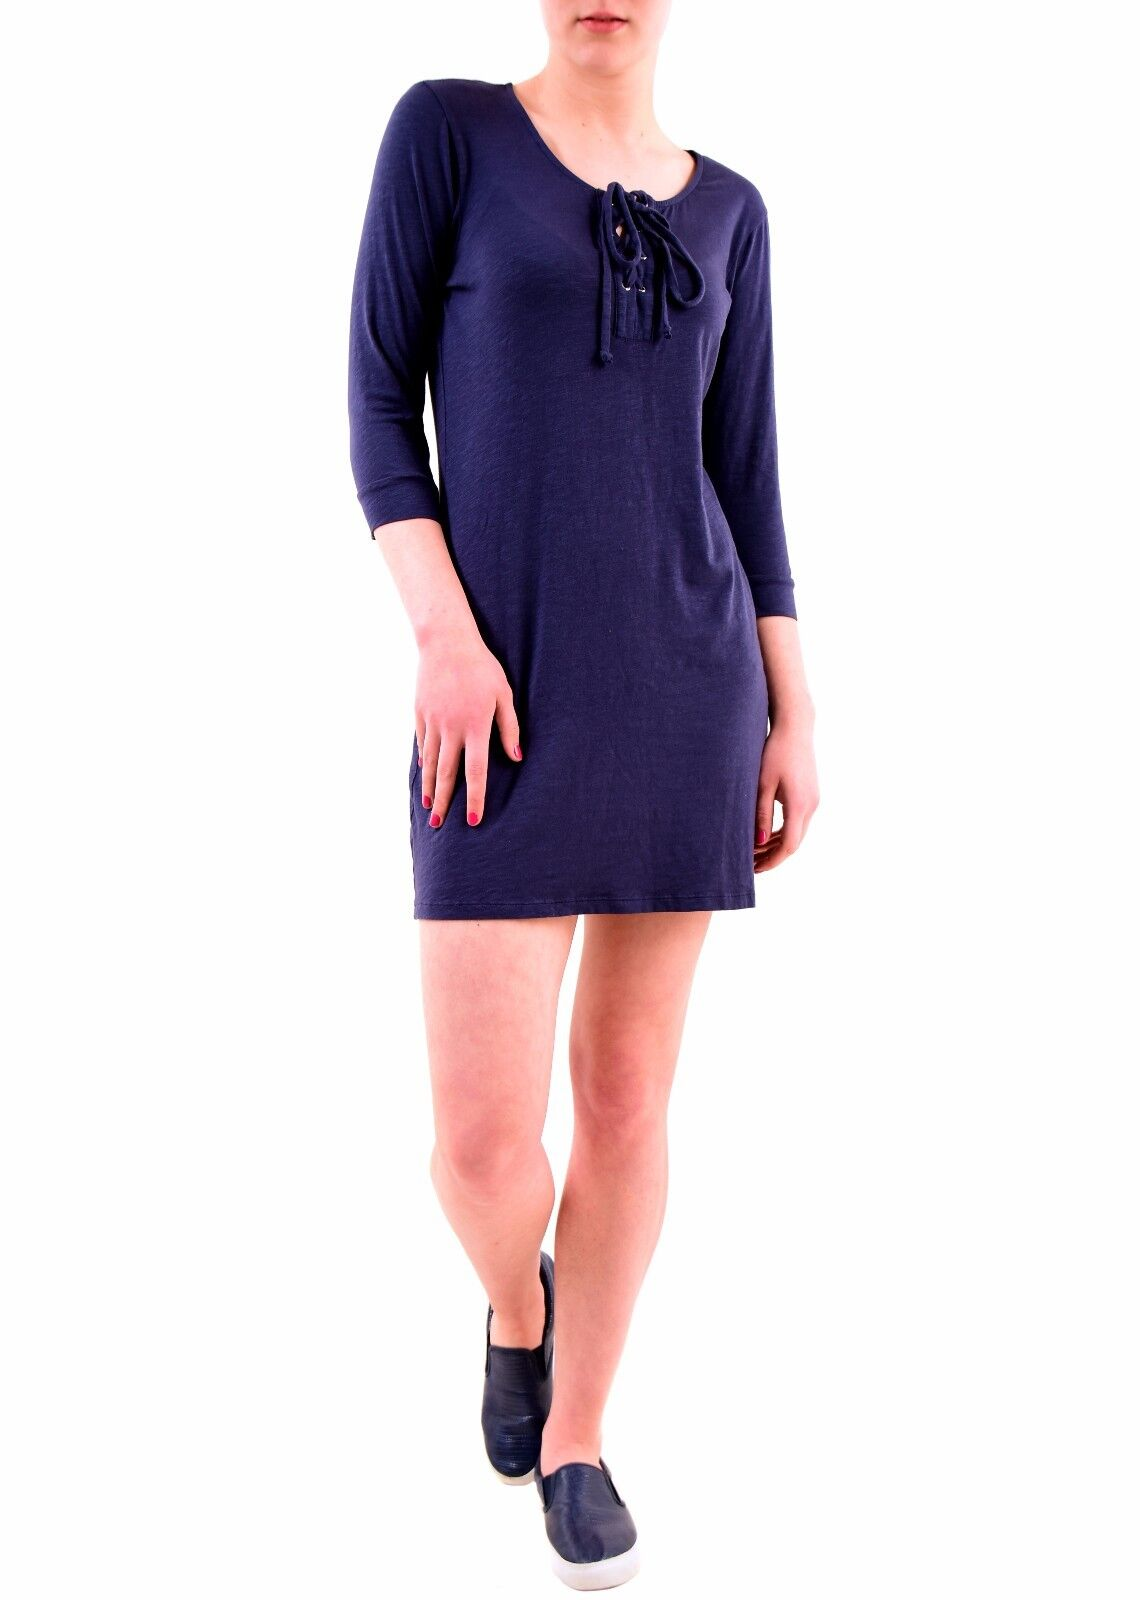 Sundry Women's Authentic 3 4 Sleeve Lace Up Dress Navy Size US1 RRP  BCF75